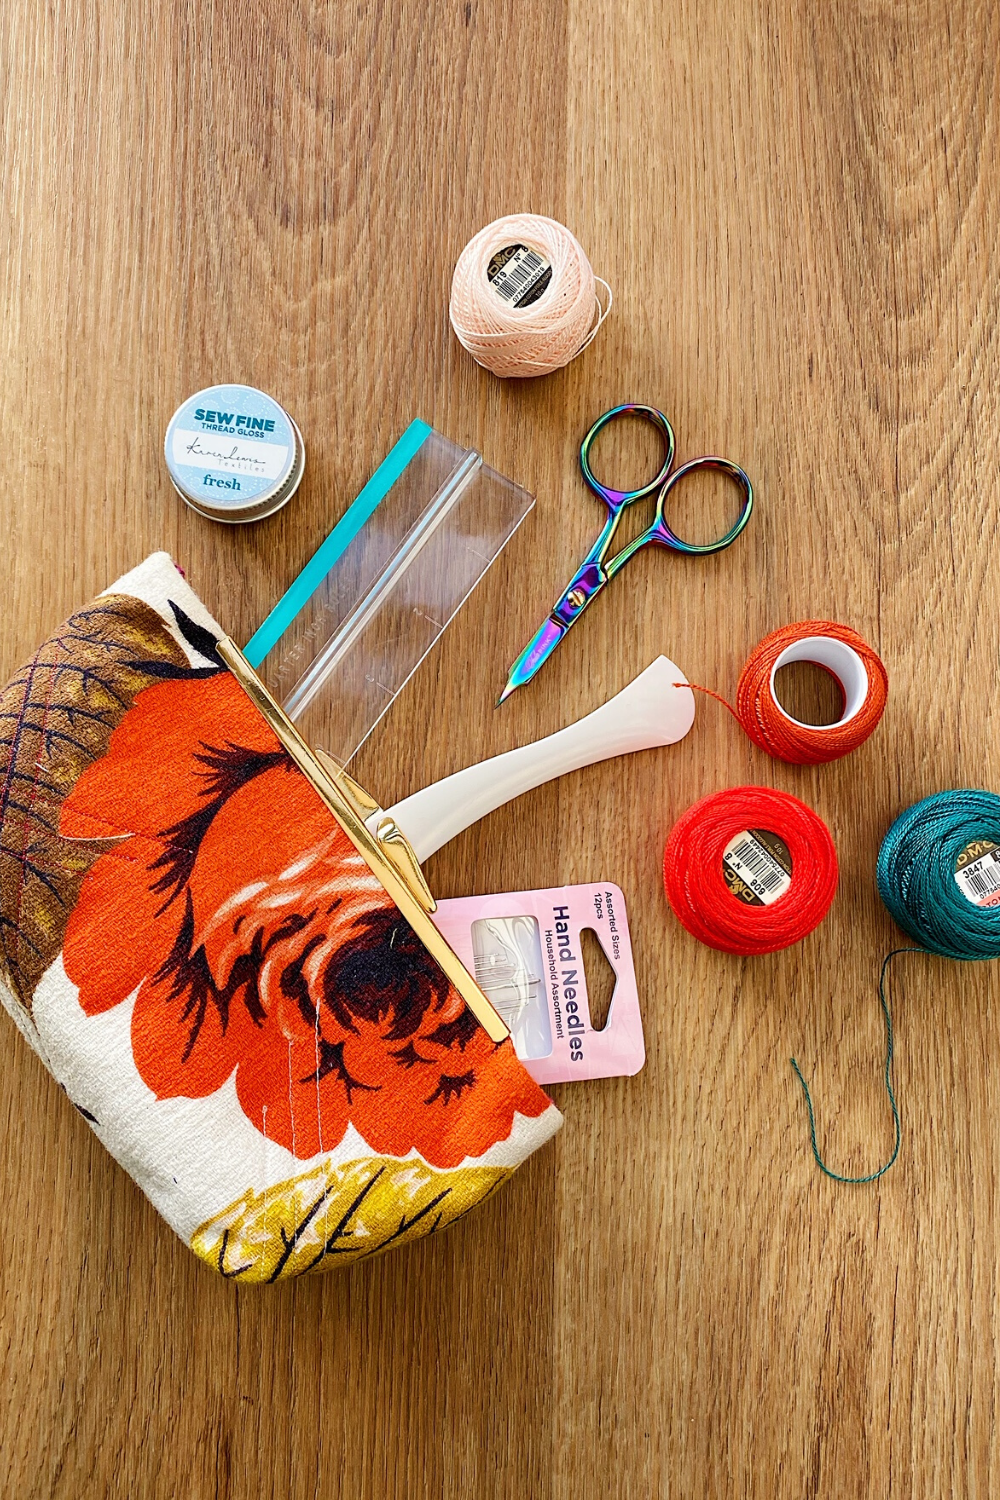 Lorna's gifted sewing bag with bold orange floral with scattered sewing and quilting notions falling out of the open bag | What's in Your Sewing Bag? Special Guest: Lorna from Cloth and Crescent | Shannon Fraser Designs